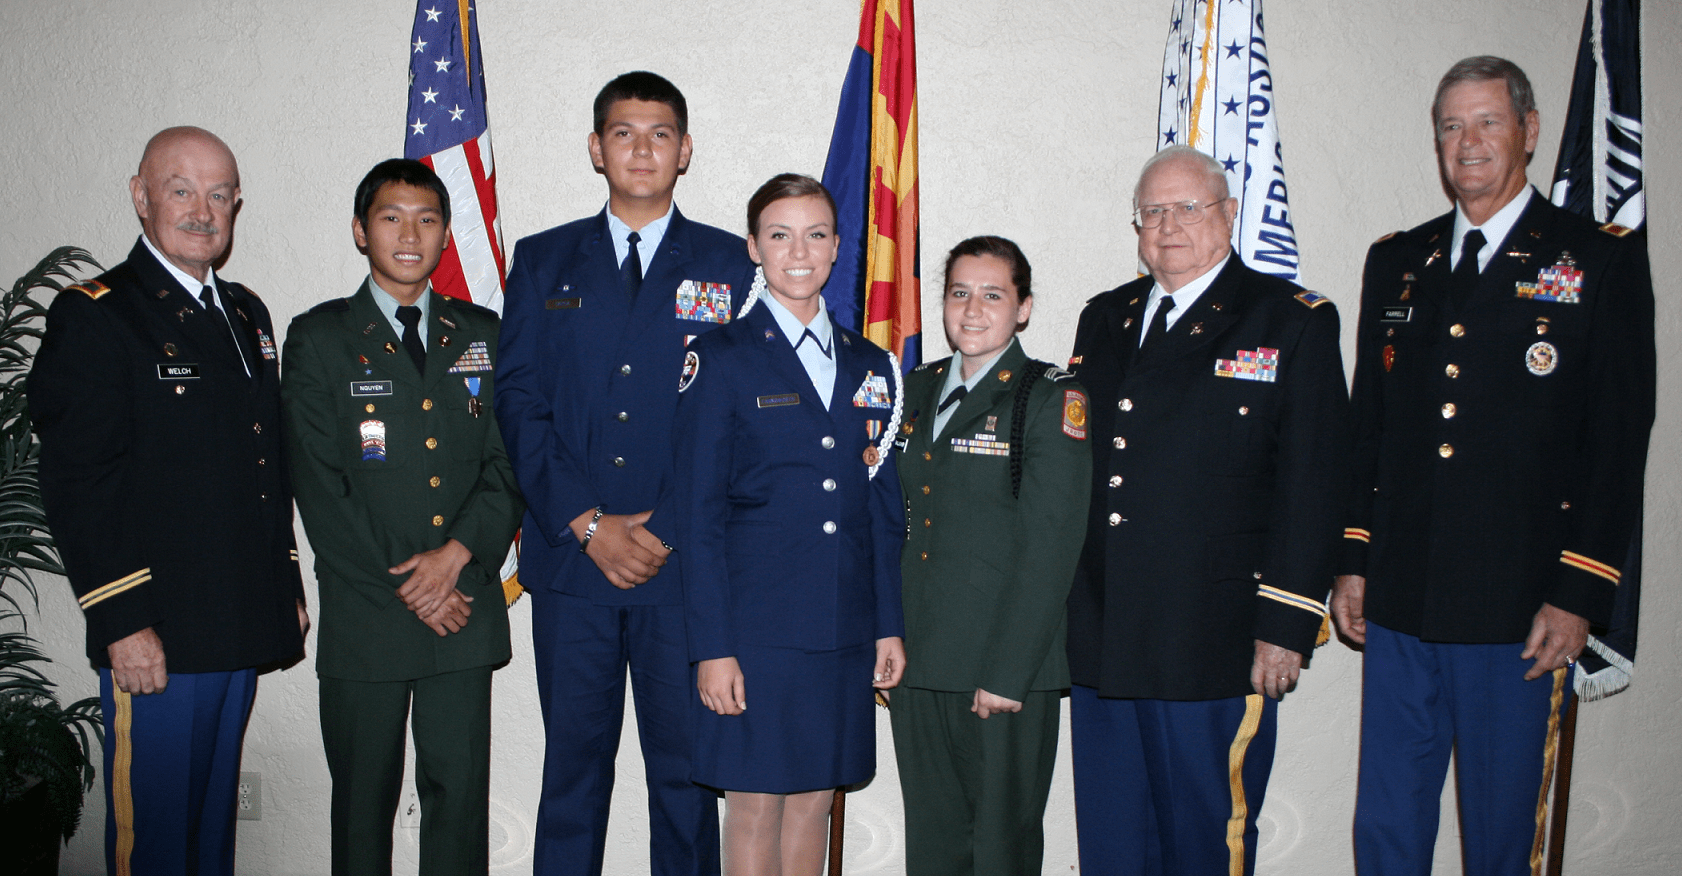 2013 Scholarship Awardees, left to right: Chapter President Colonel Rob Welch, Central HS Cadet Vu Nguyen, Sandra Day O'Connor HS Cadets Luis Garcia & Alexis Farnsworth, North HS Cadet Shelby Gallagher, Scholarship Treasurer Colonel Bill Roscher, and Scholarship Committee member Colonel Rance Farrell.